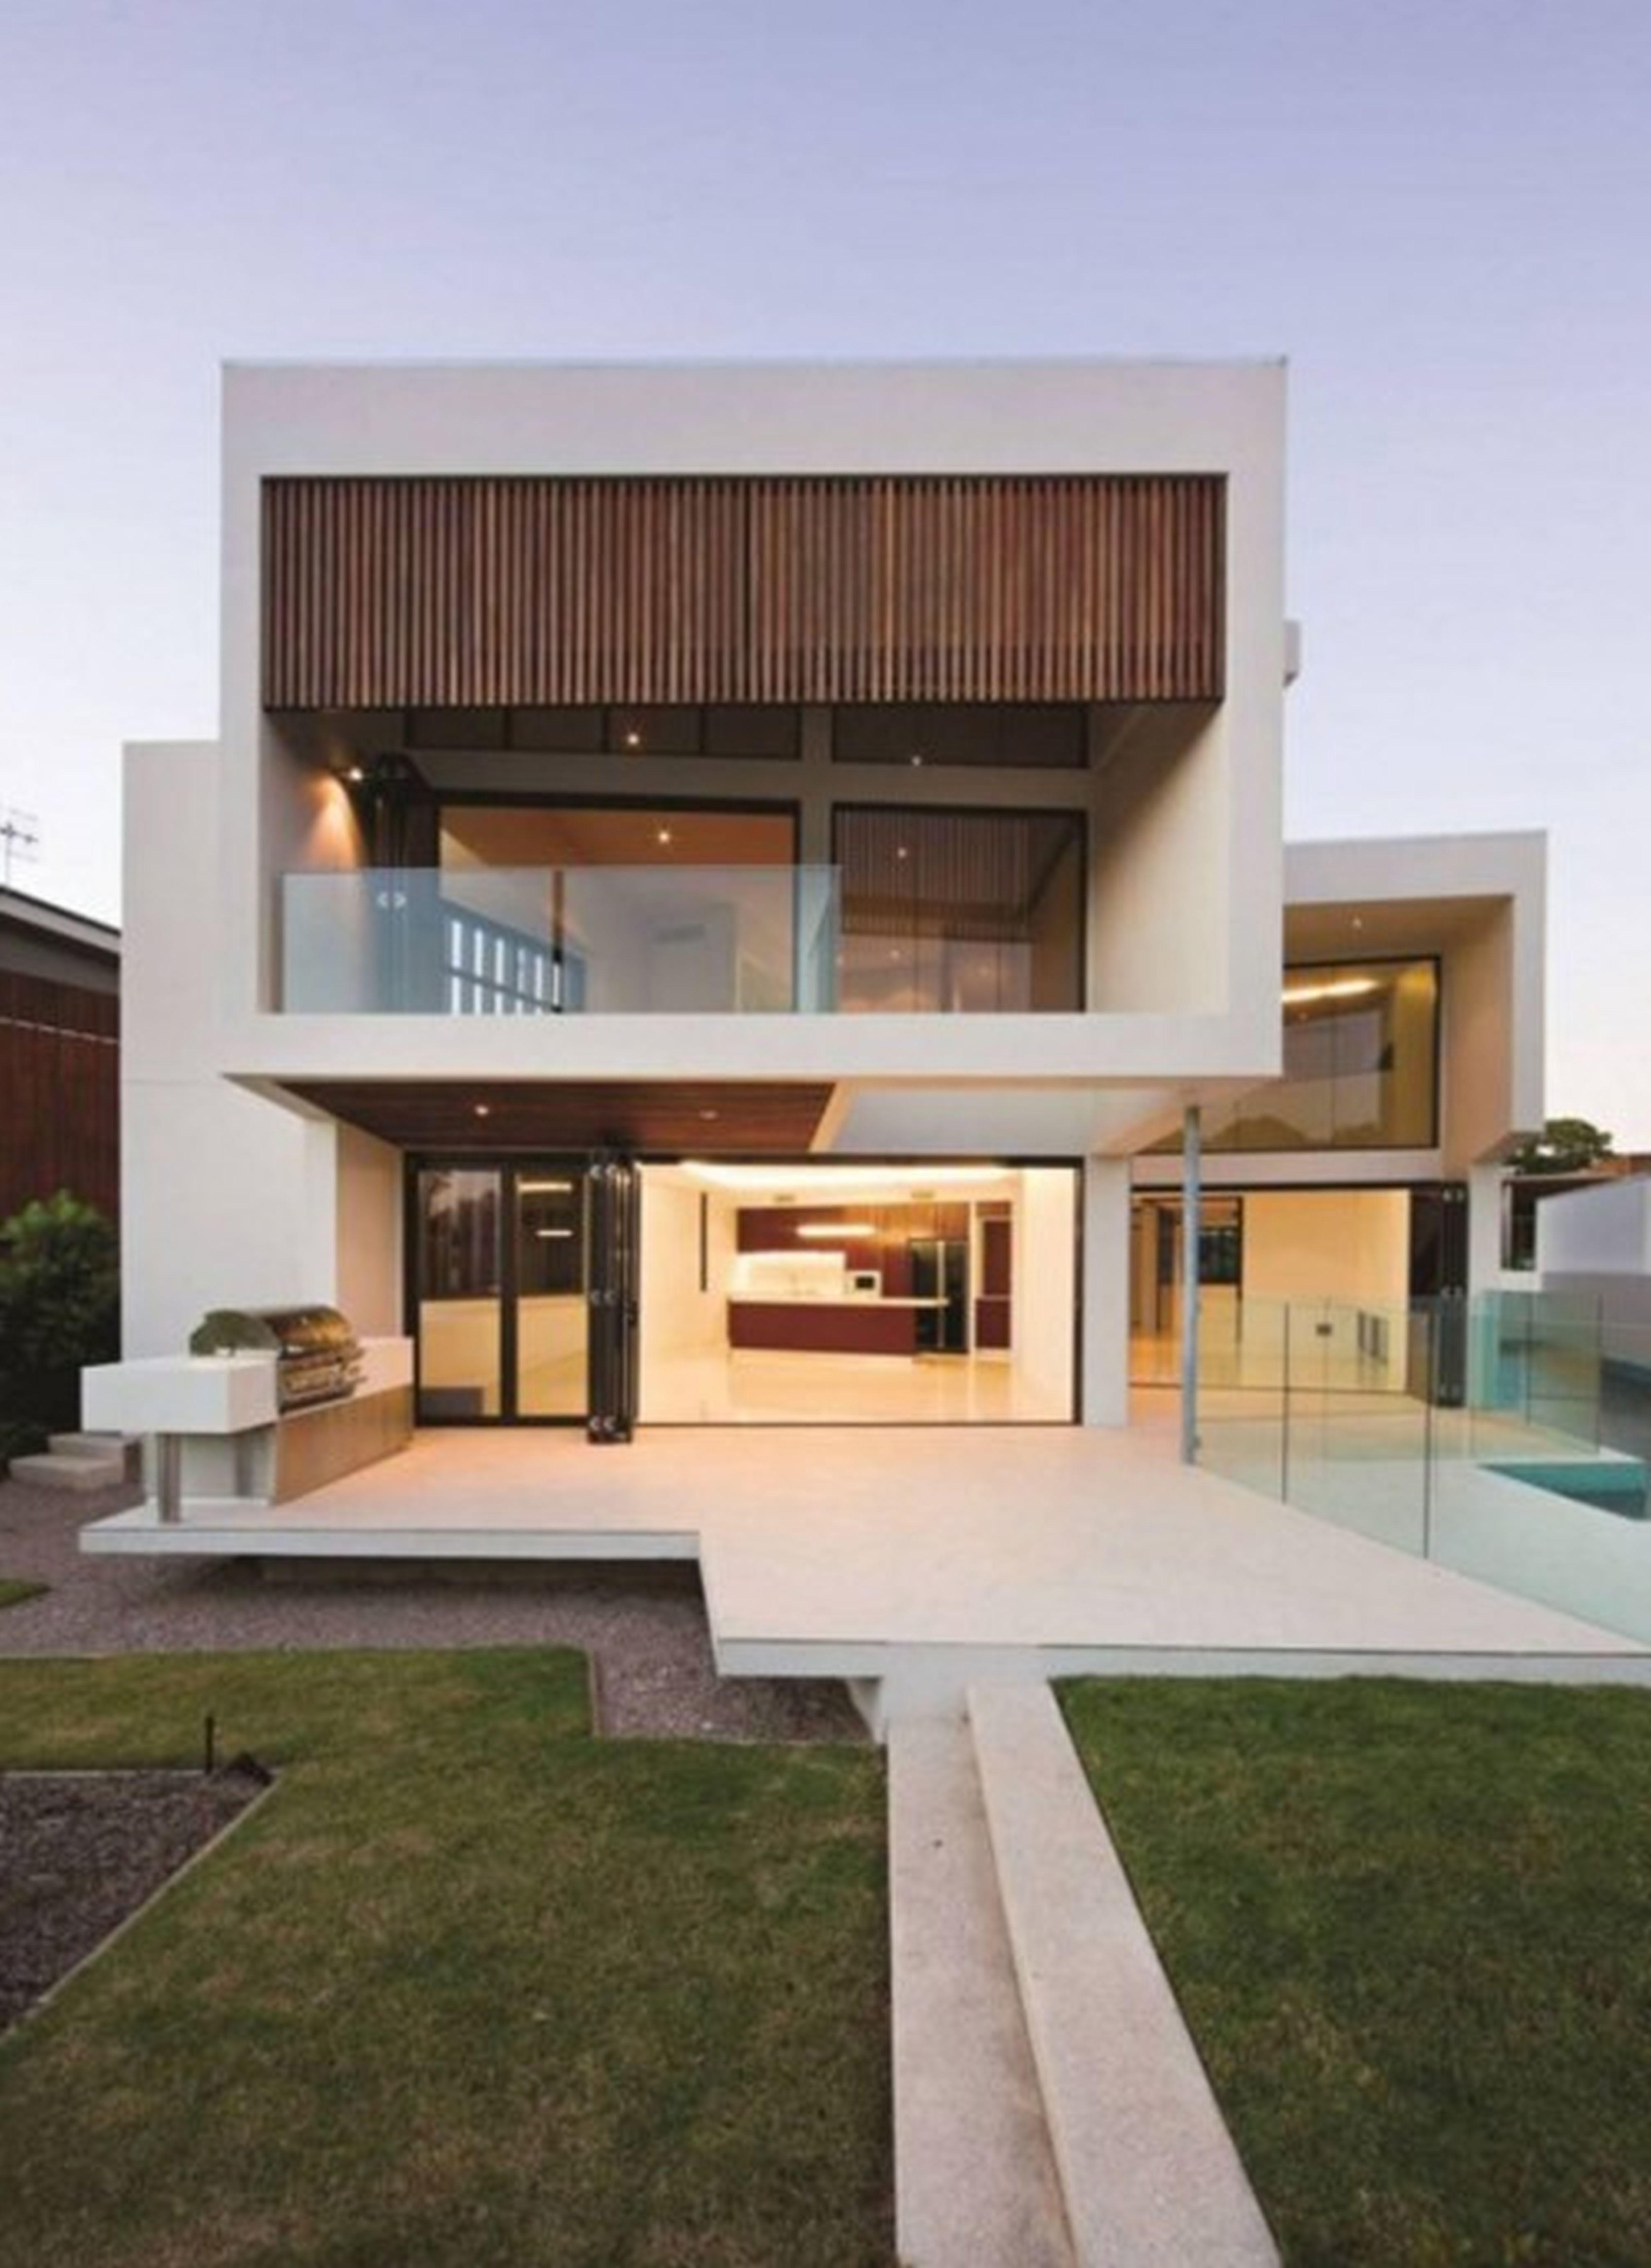 architectures modern minimalist house design 2 floor very in design floor 2 very architectures images modern home design